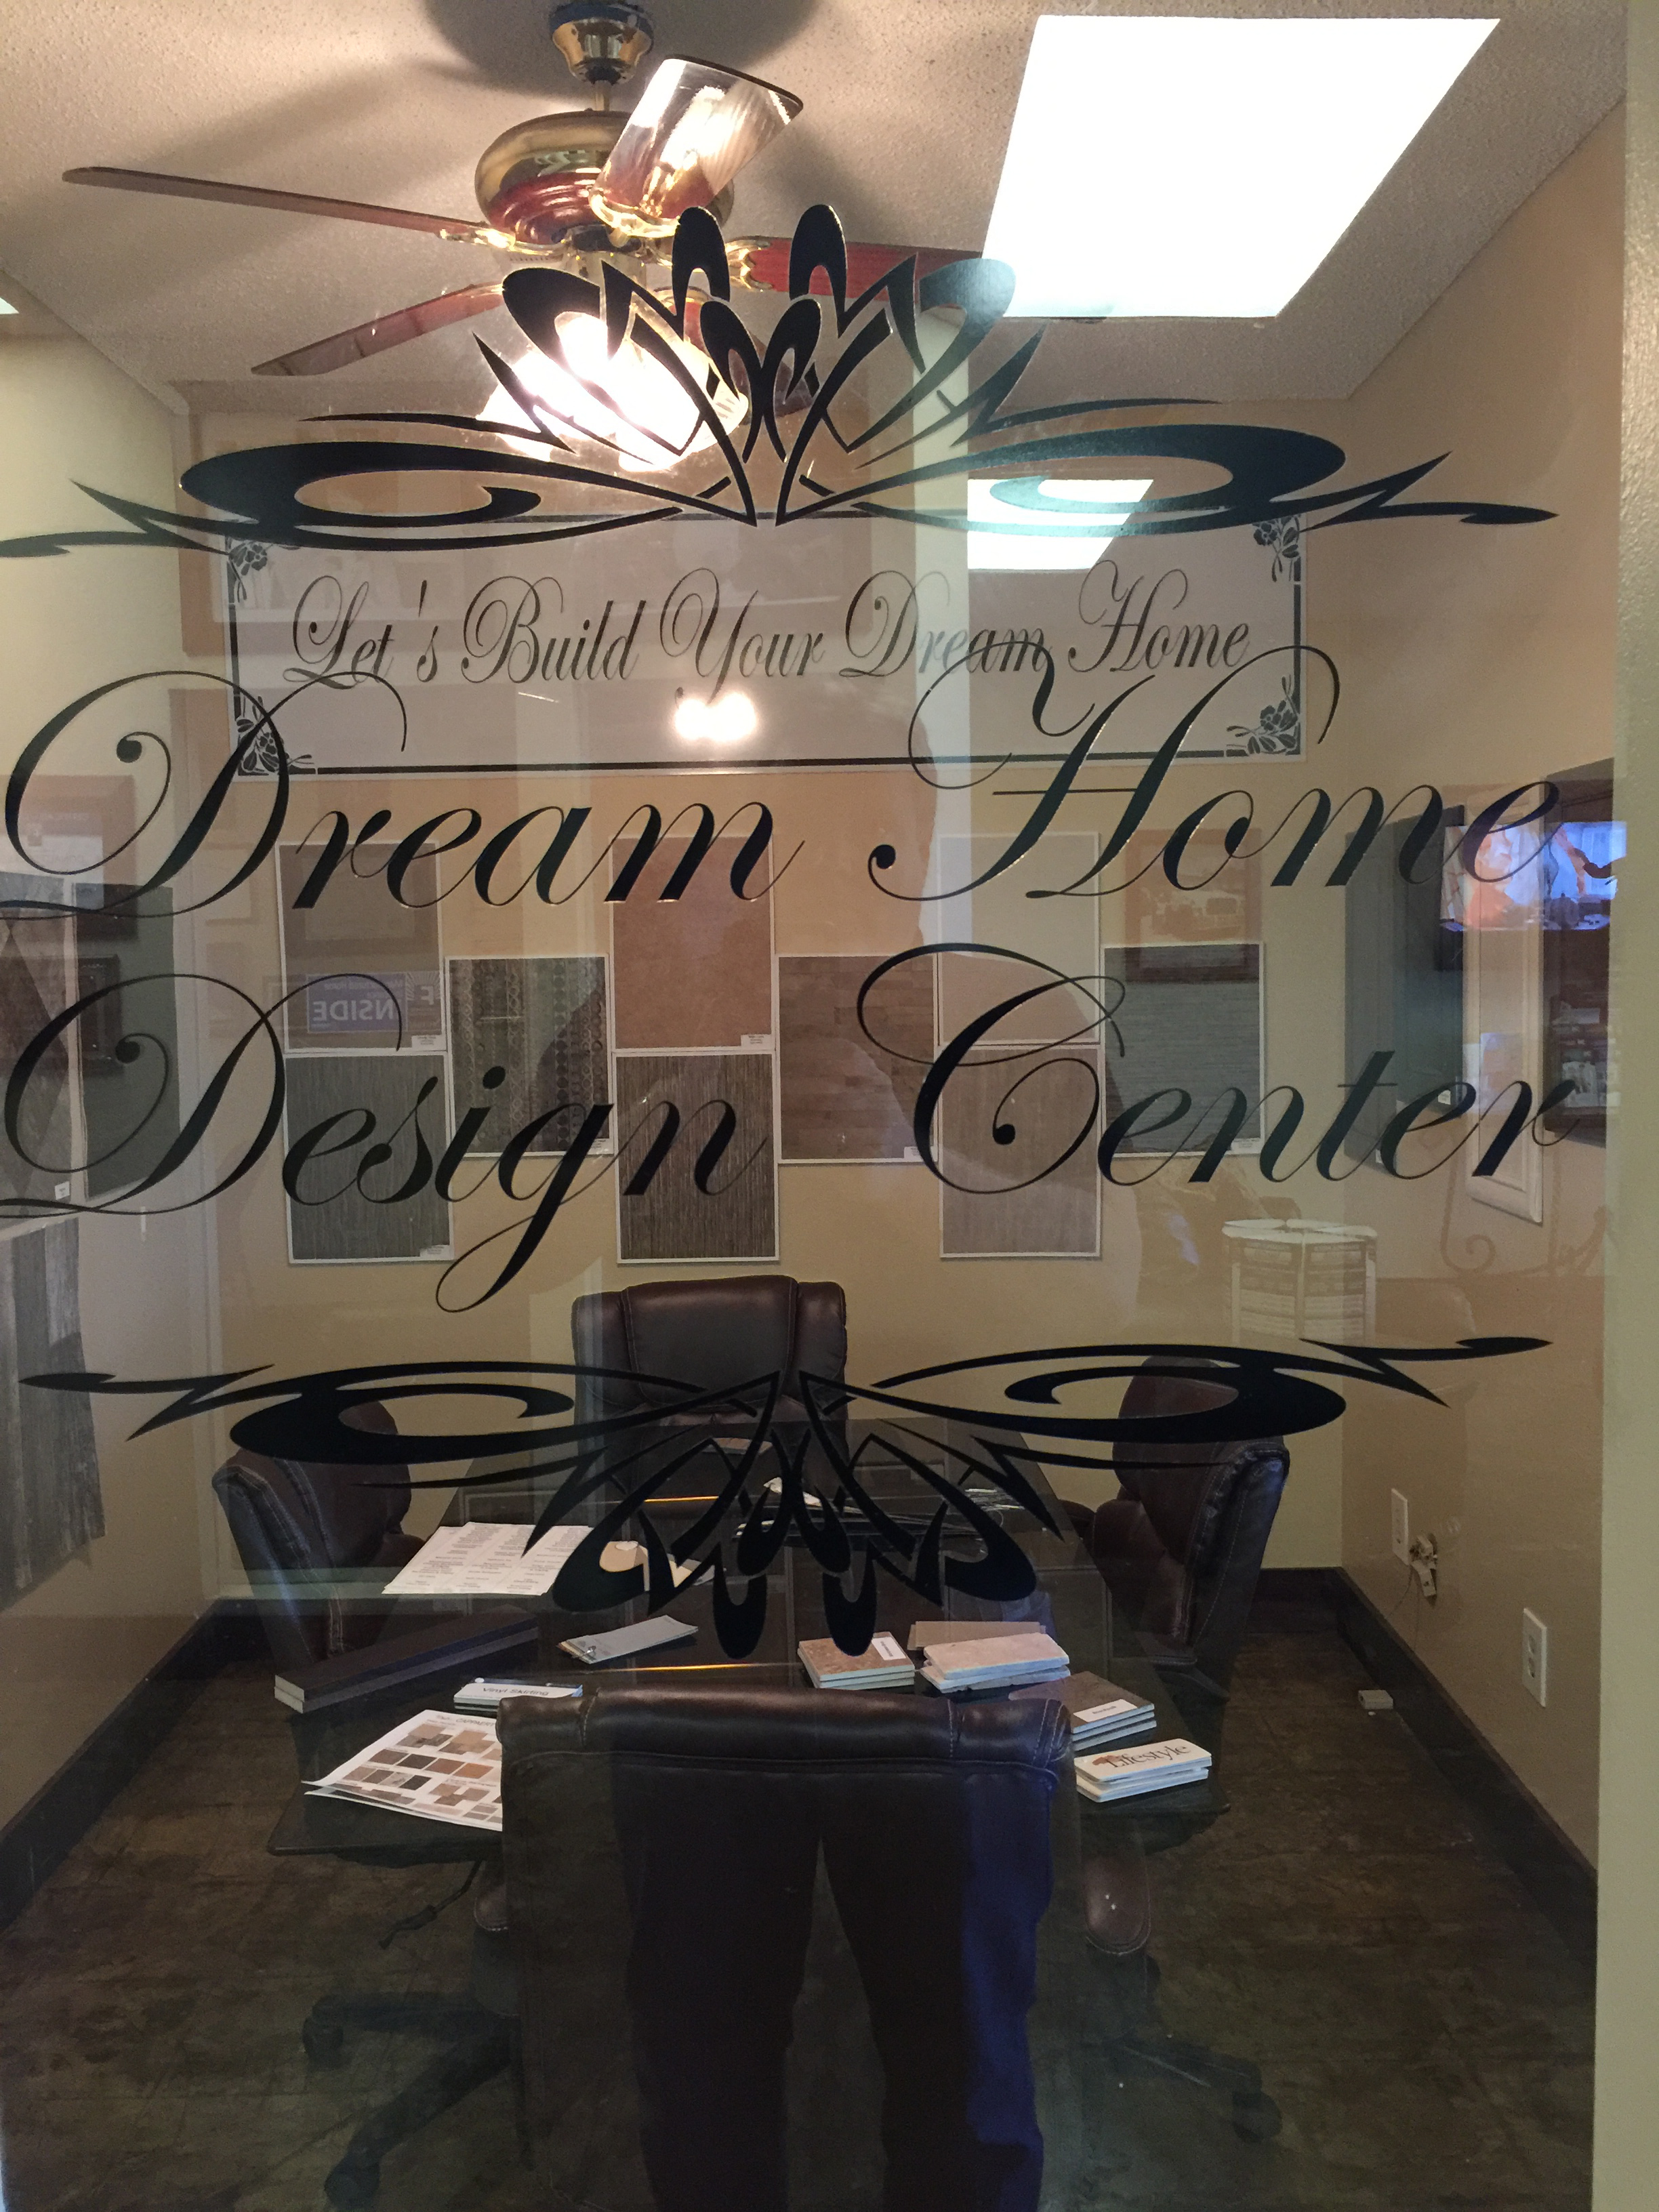 Dream home design center photo